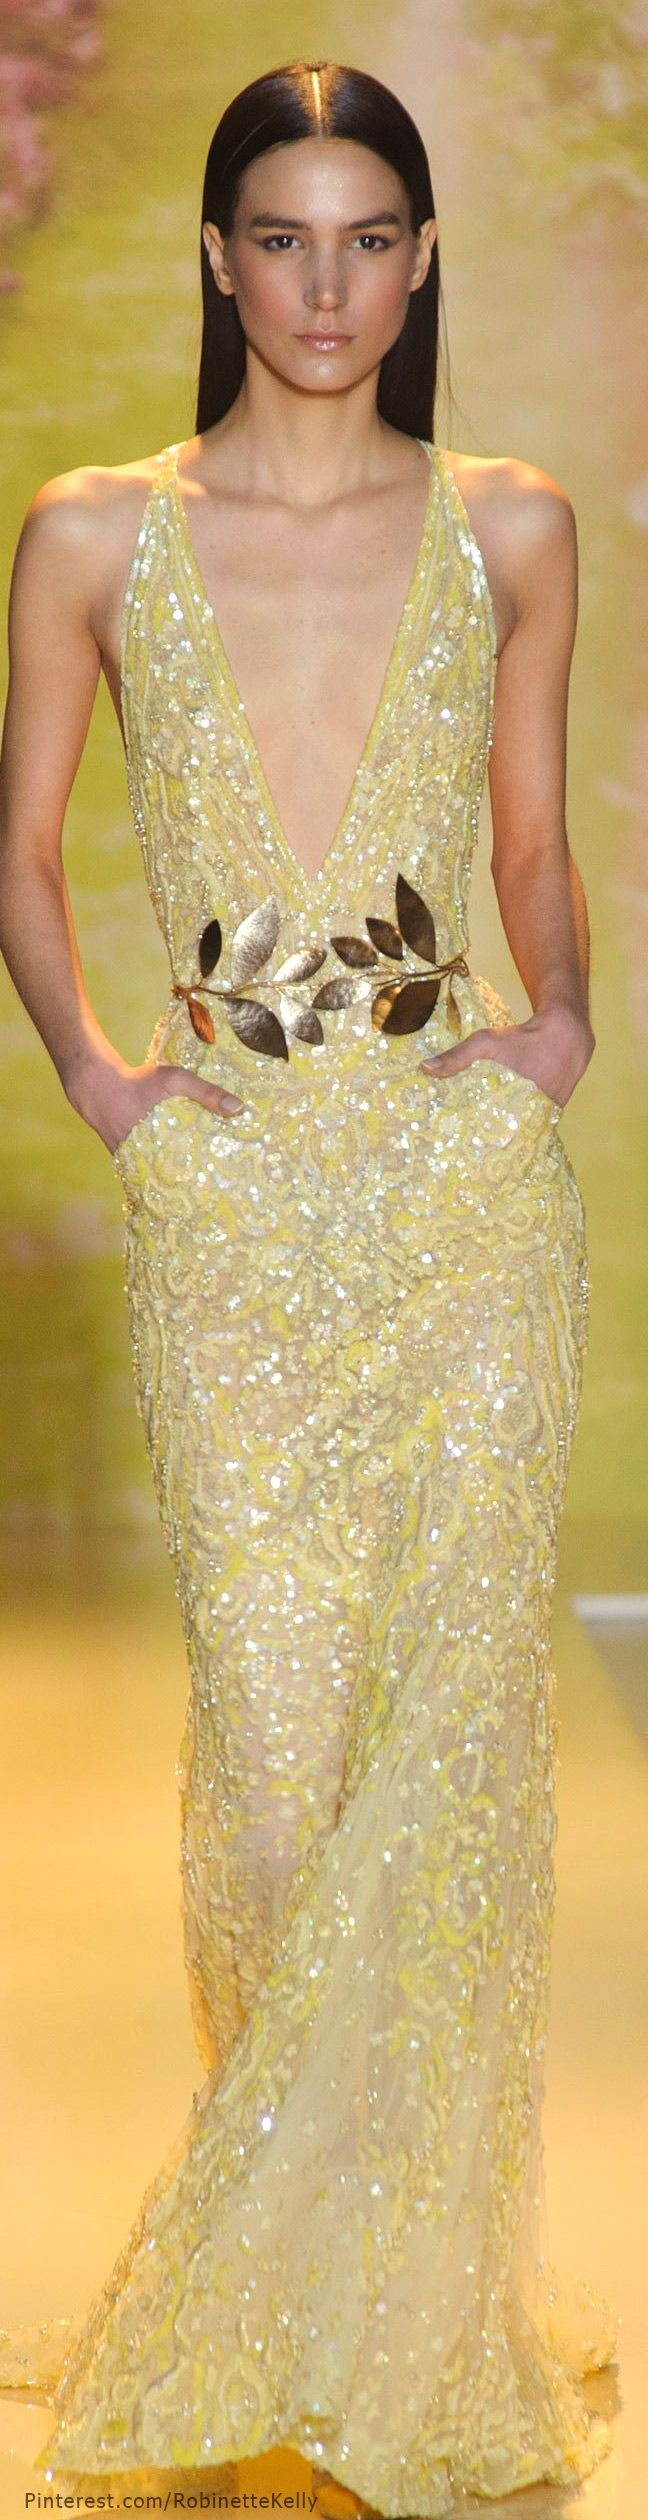 Zuhair Murad Haute Couture | S/S 2014 - I'm sorry, but using models this thin is just so...wrong. It's painful to see her.